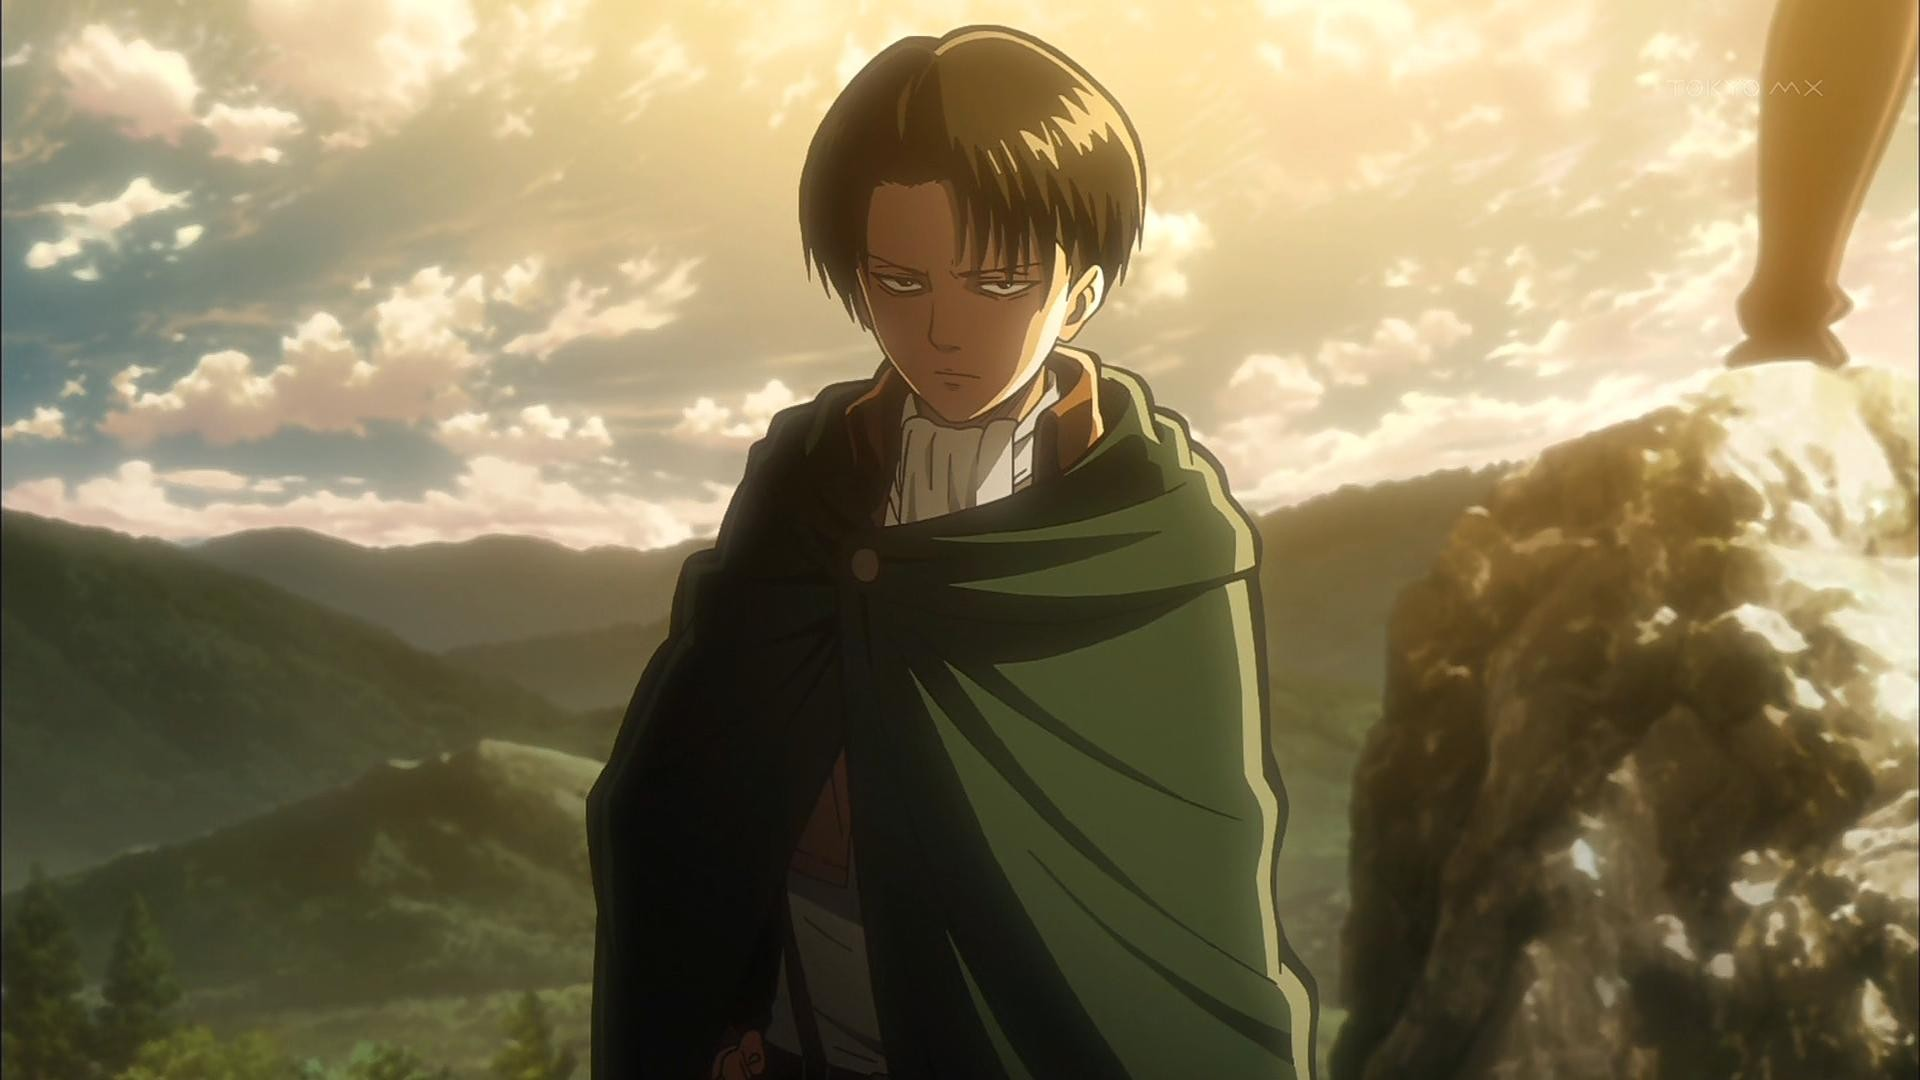 Levi Ackerman wallpaper ·① Download free beautiful HD wallpapers for desktop and mobile devices ...